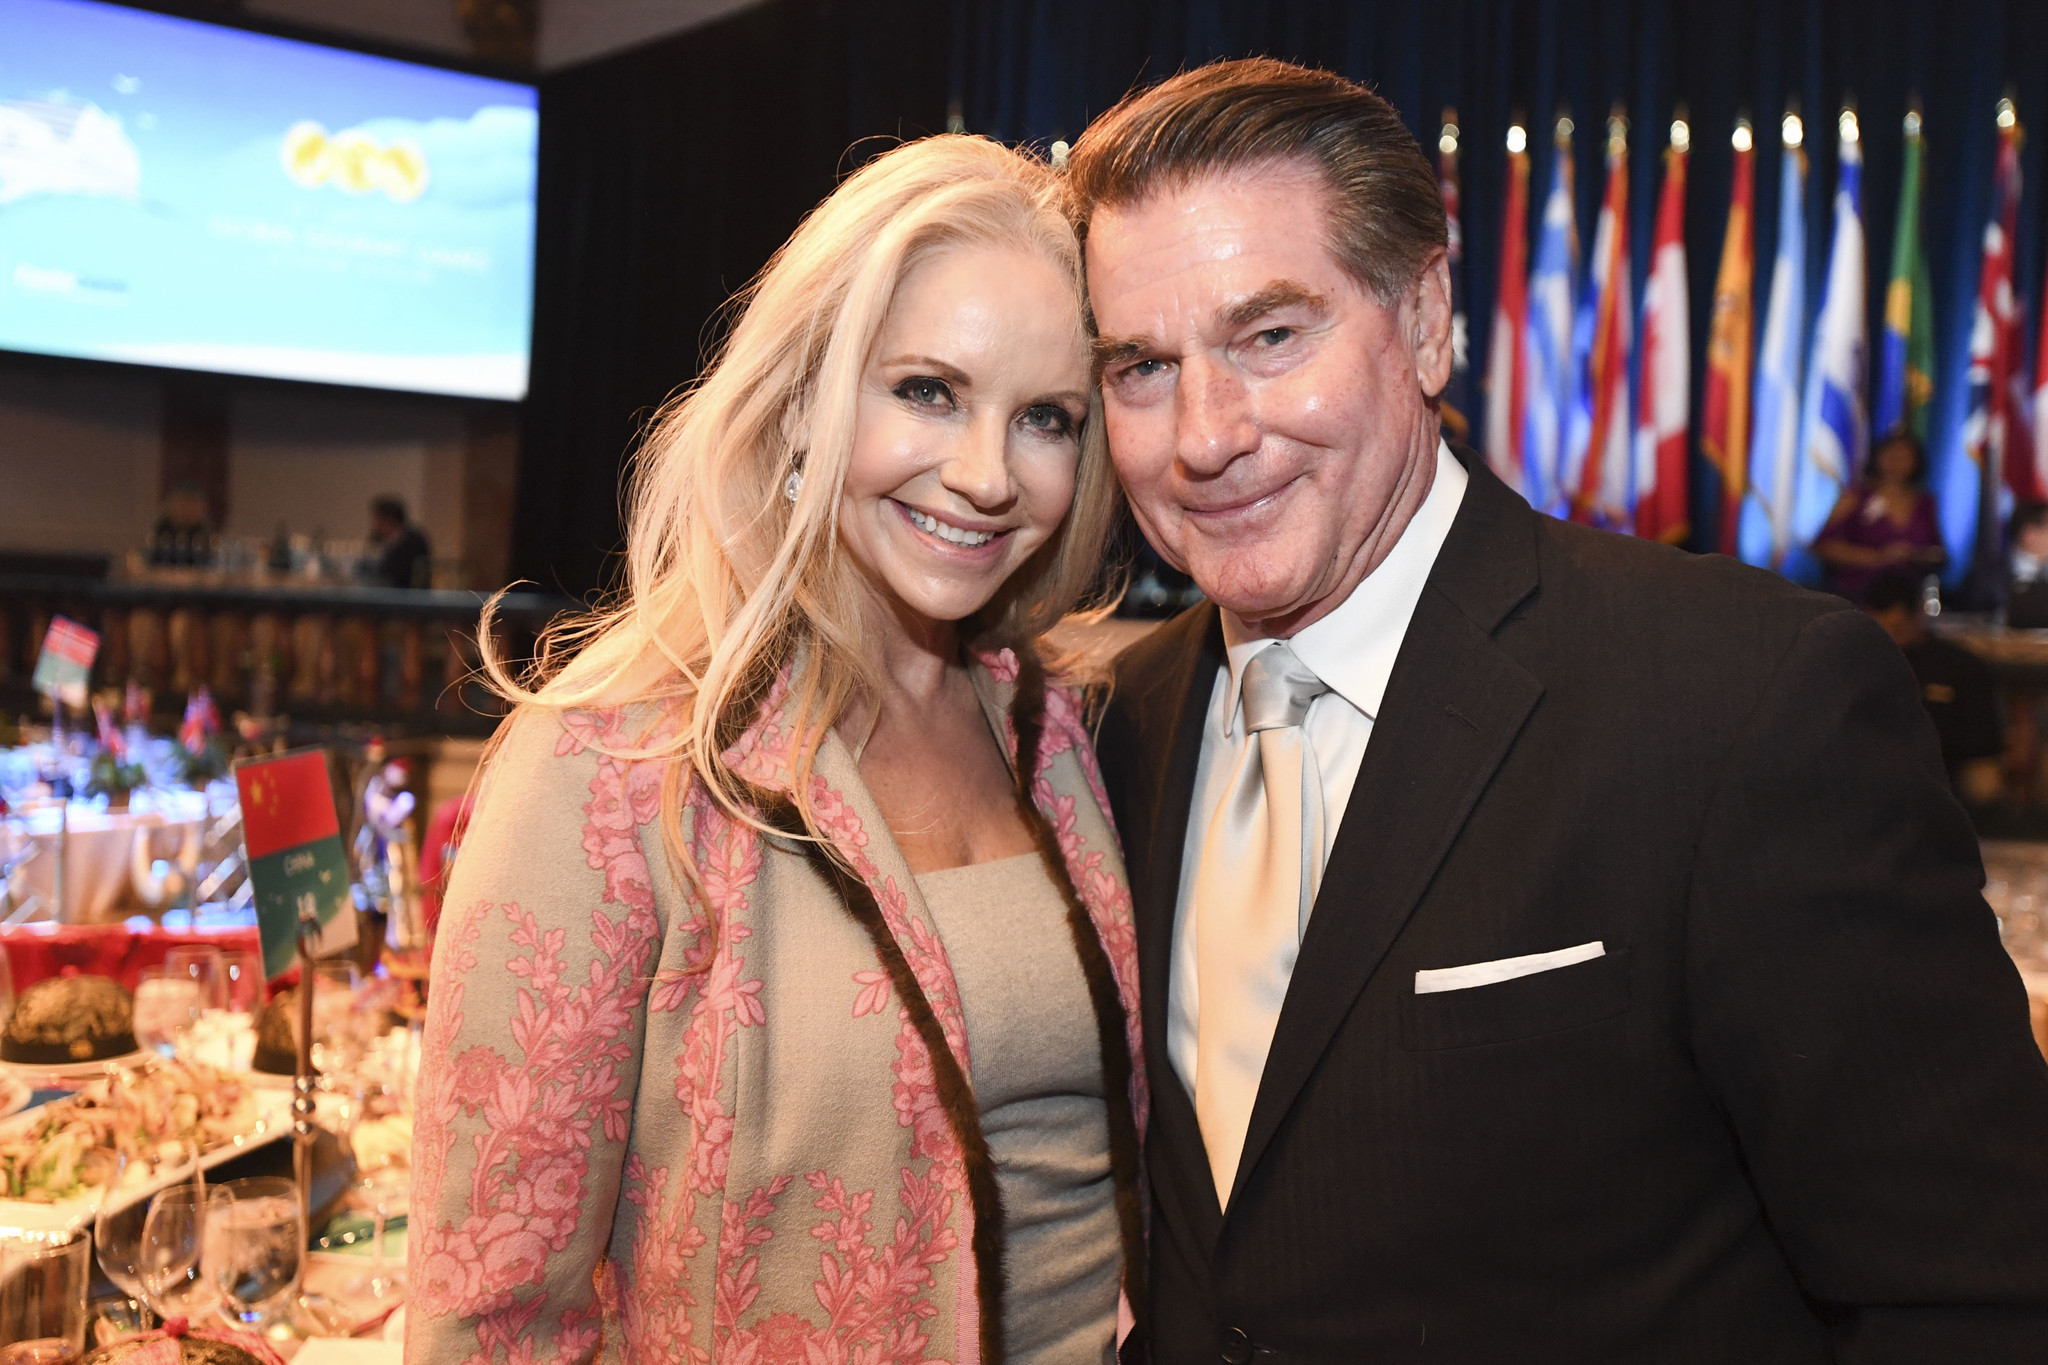 Candace Garvey and former Dodgers star Steve Garvey before changing into their costumes for the Global Gourmet Games.